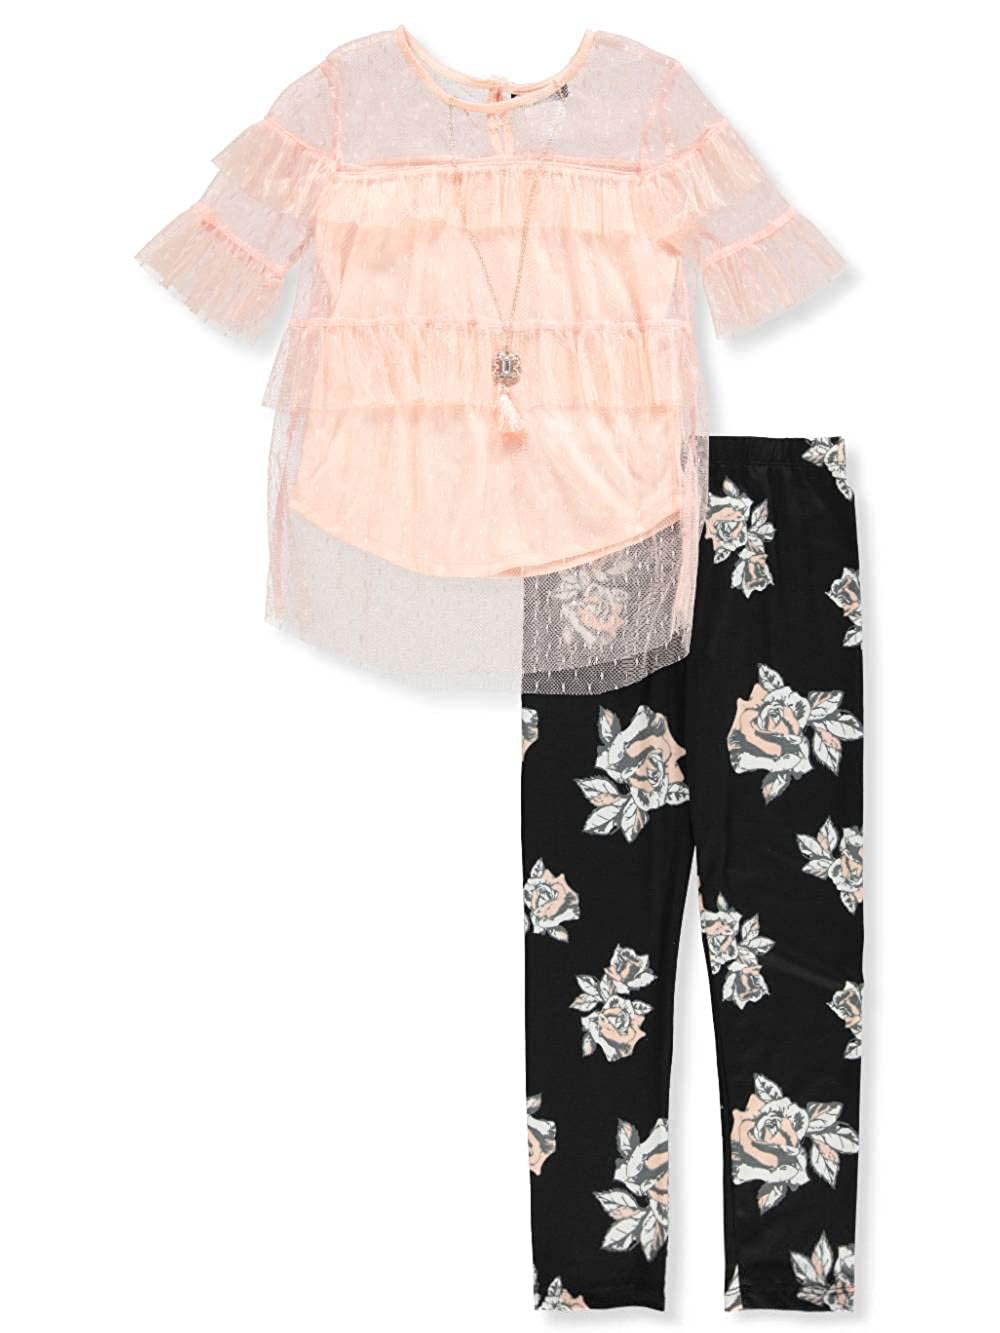 RMLA Girls' 2-Piece Leggings Set Outfit with Necklace